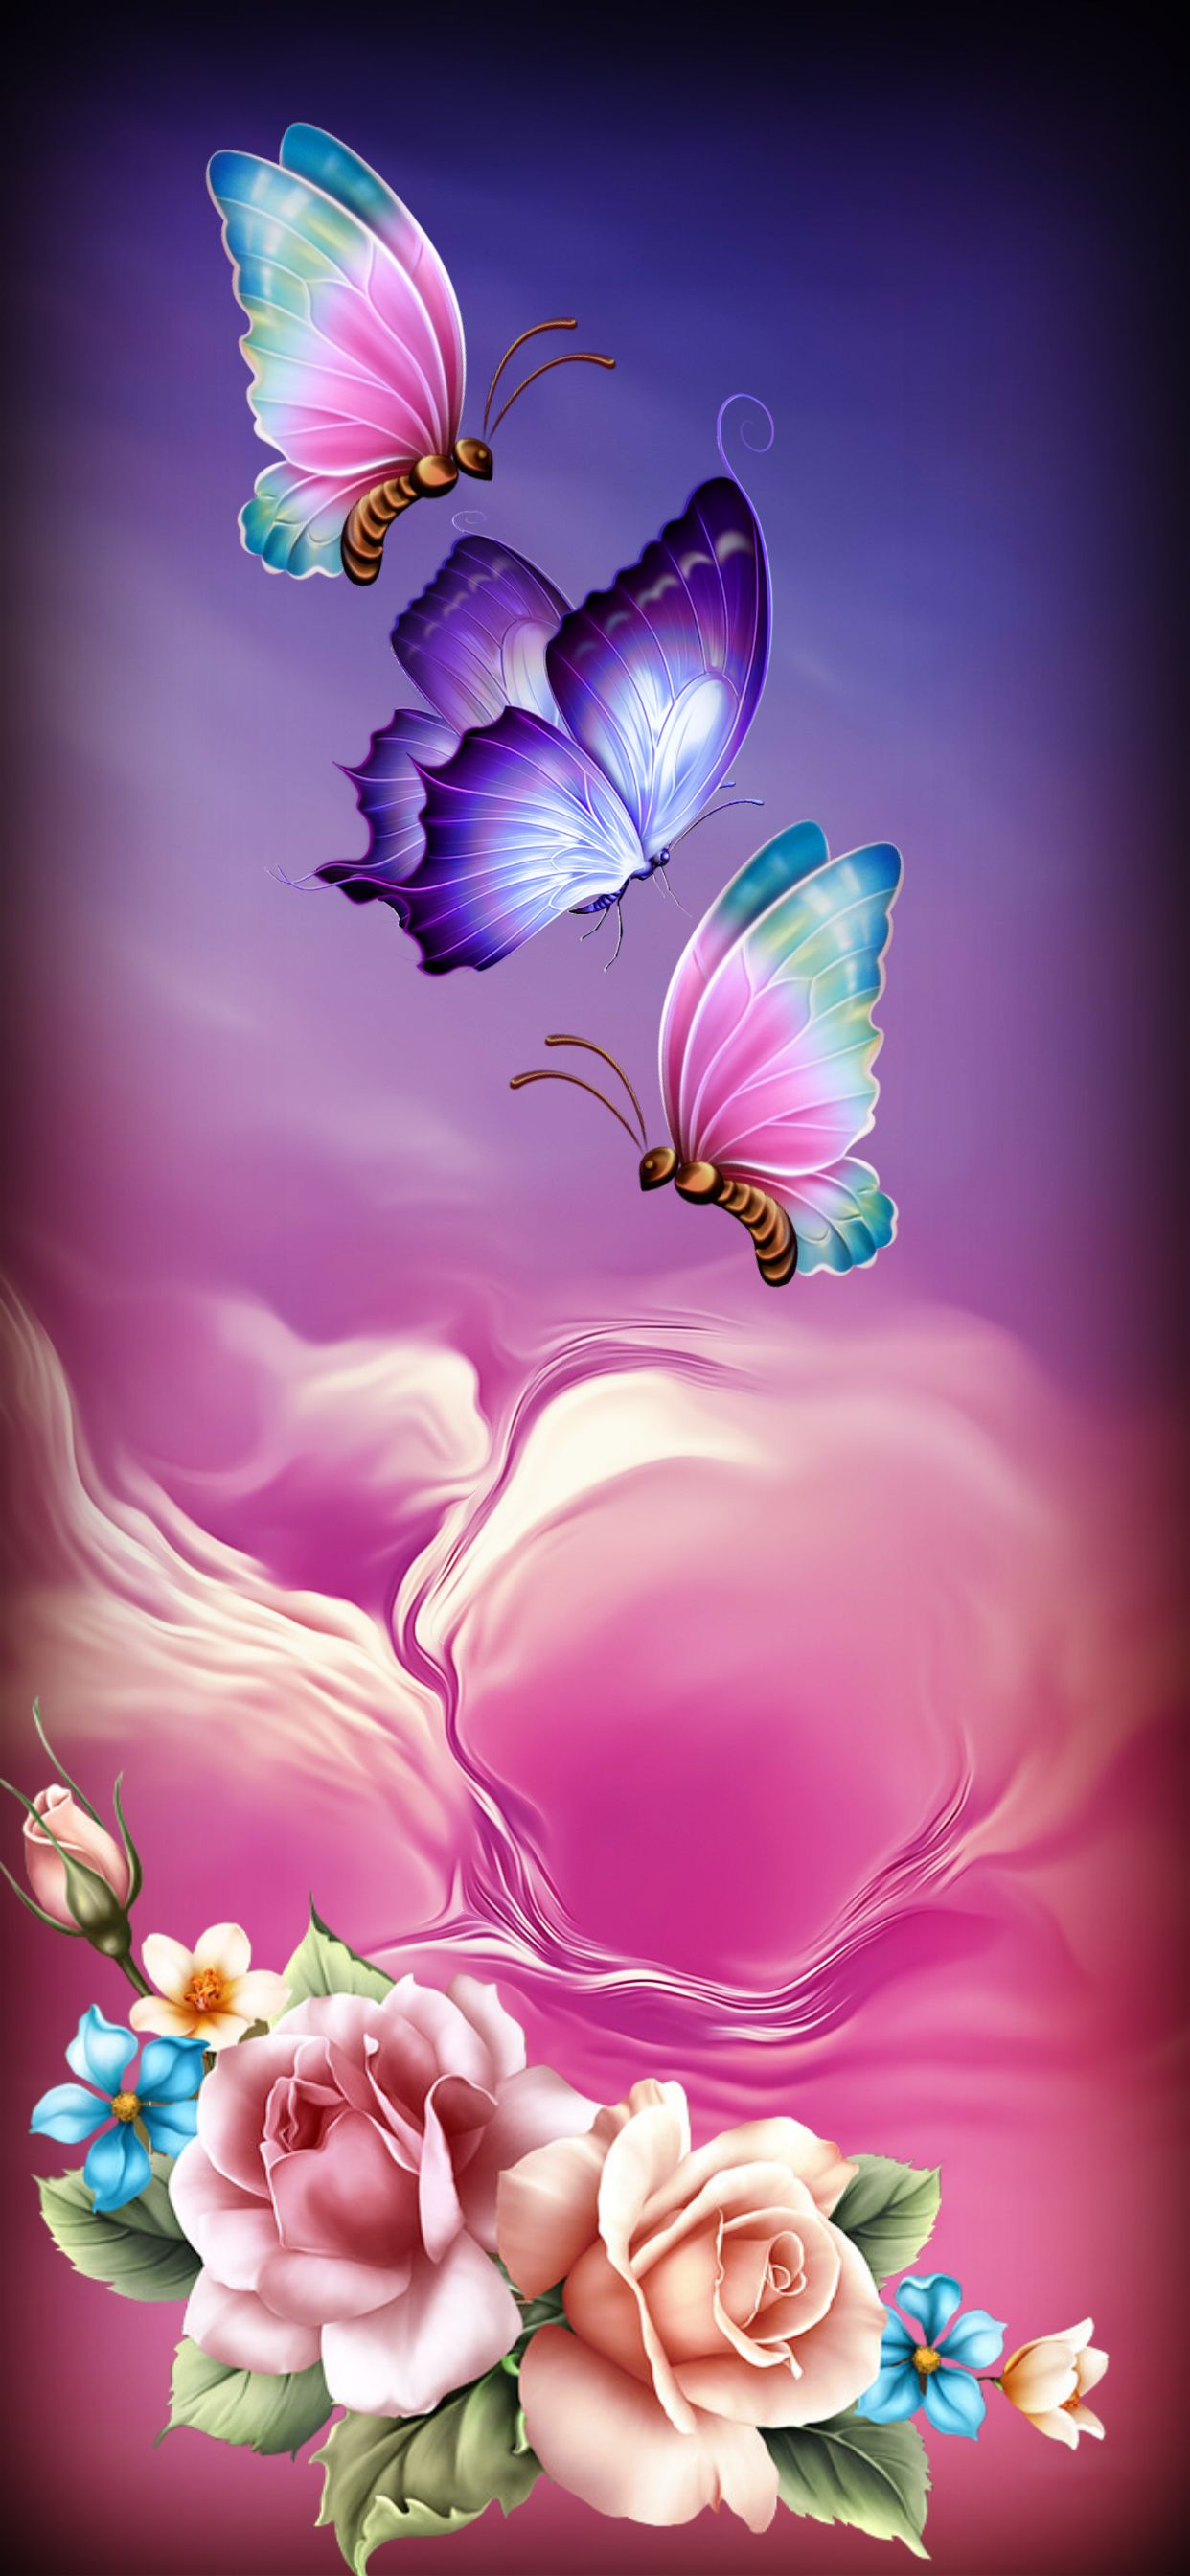 Pin By Louanna Steiner On Butterflies Butterfly Wallpaper Flower Phone Wallpaper Butterfly Painting